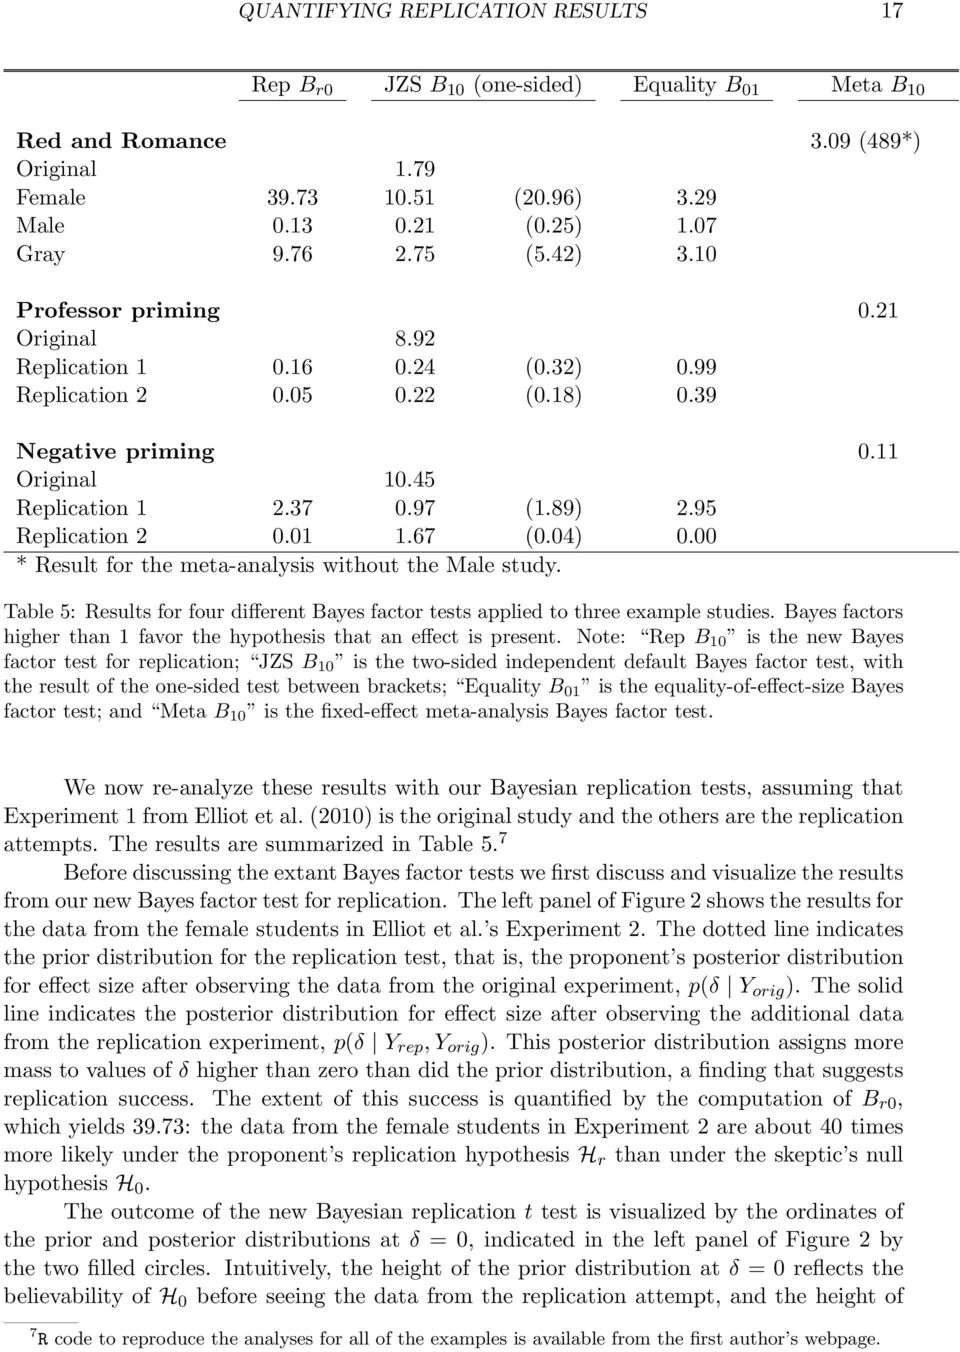 95 Replication 2 0.01 1.67 (0.04) 0.00 * Result for the meta-analysis without the Male study. Table 5: Results for four different Bayes factor tests applied to three example studies.